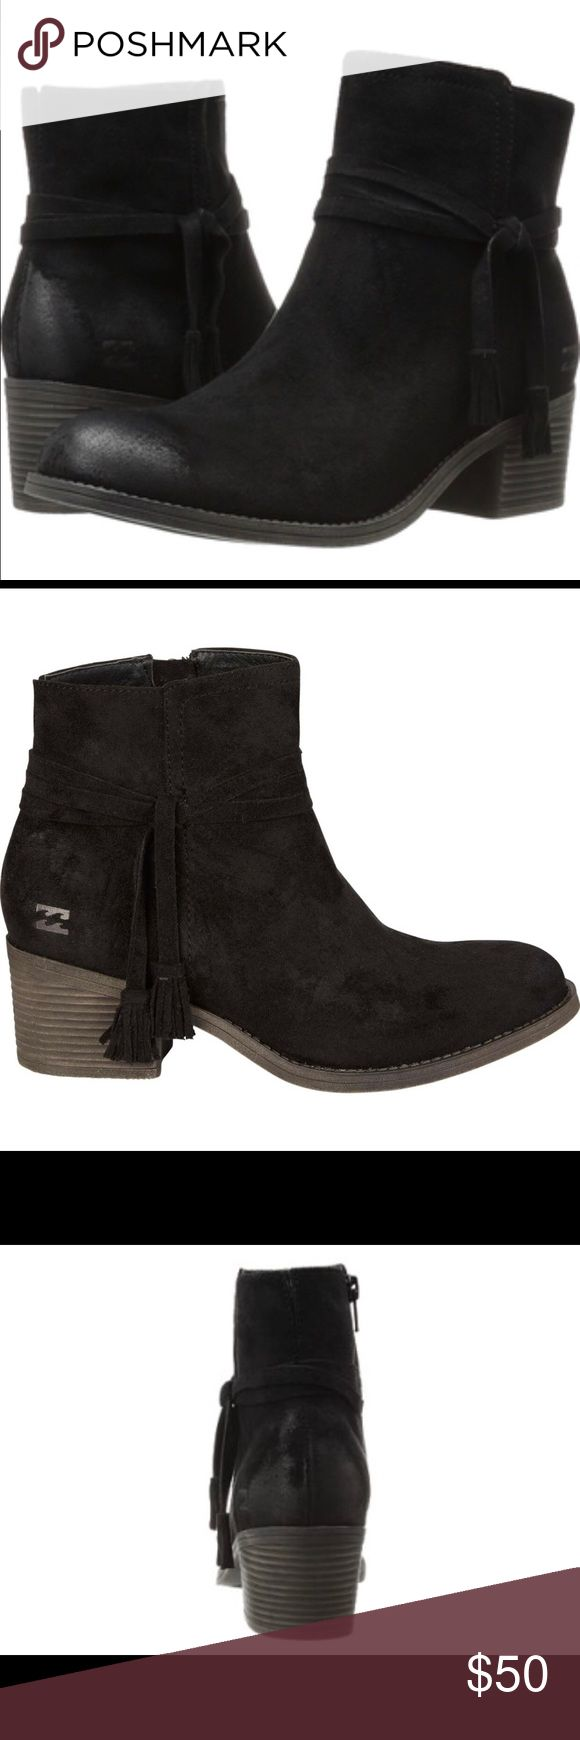 Billabong Wrap Around Booties BNWT Faux suede, wrap tie detailing and fringe trim. Heel height 1 3/4 inch. Billabong Shoes Ankle Boots & Booties